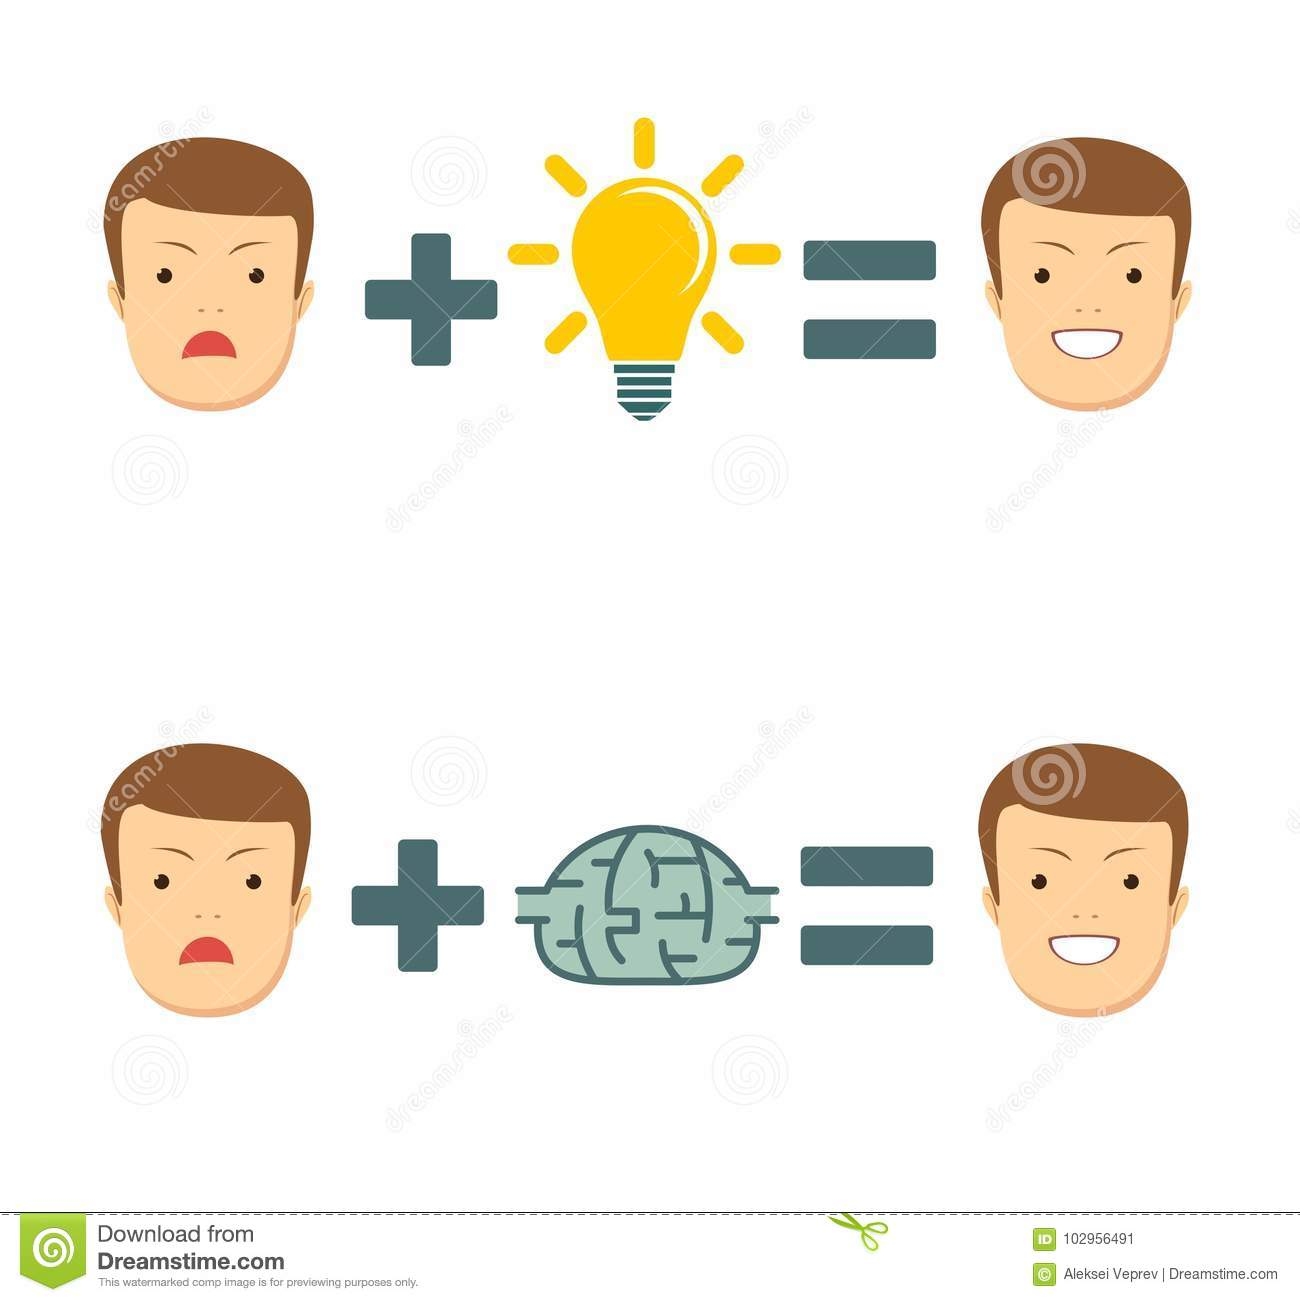 Idees And Solutions: Ideas And Solutions Makes You Smile . Stock Vector